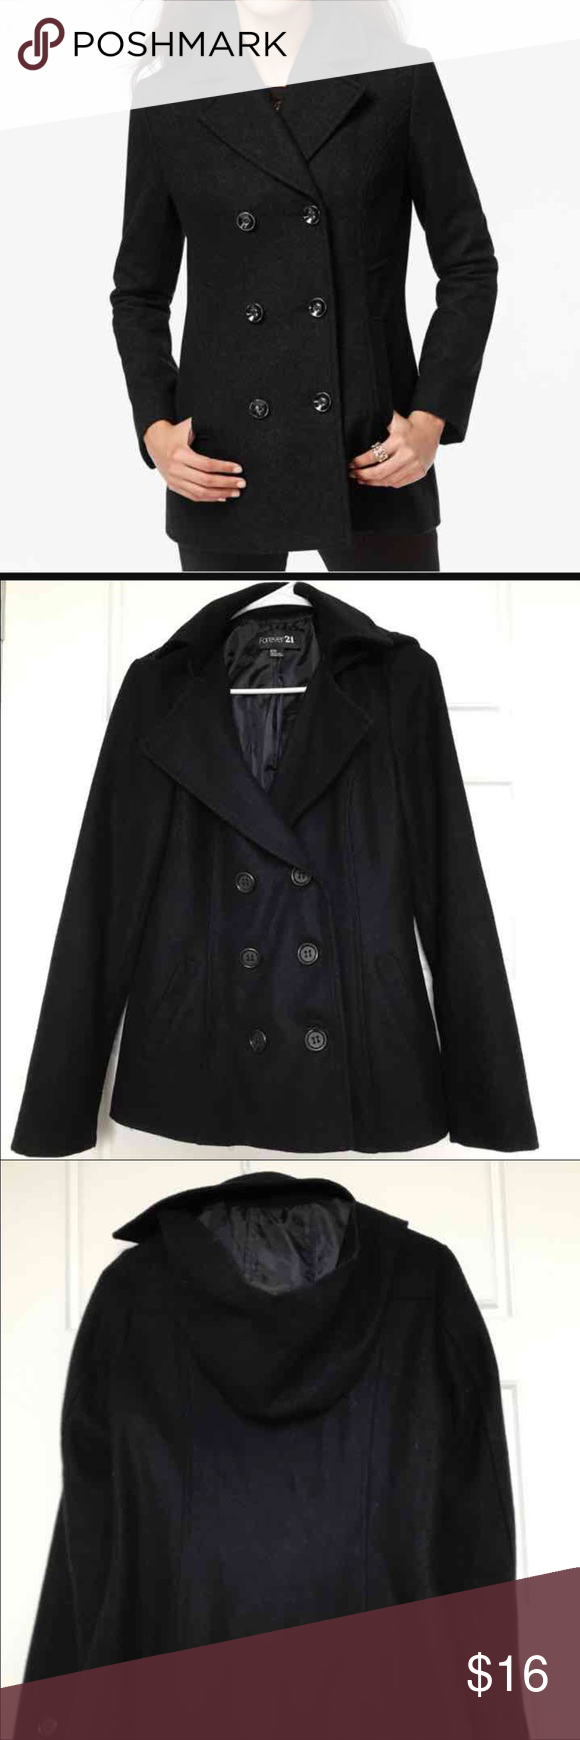 Hoodie Peacoat Hoodie Peacoat -Navy Blue - Size M - Forever 21 - Very good condition Forever 21 Jackets & Coats